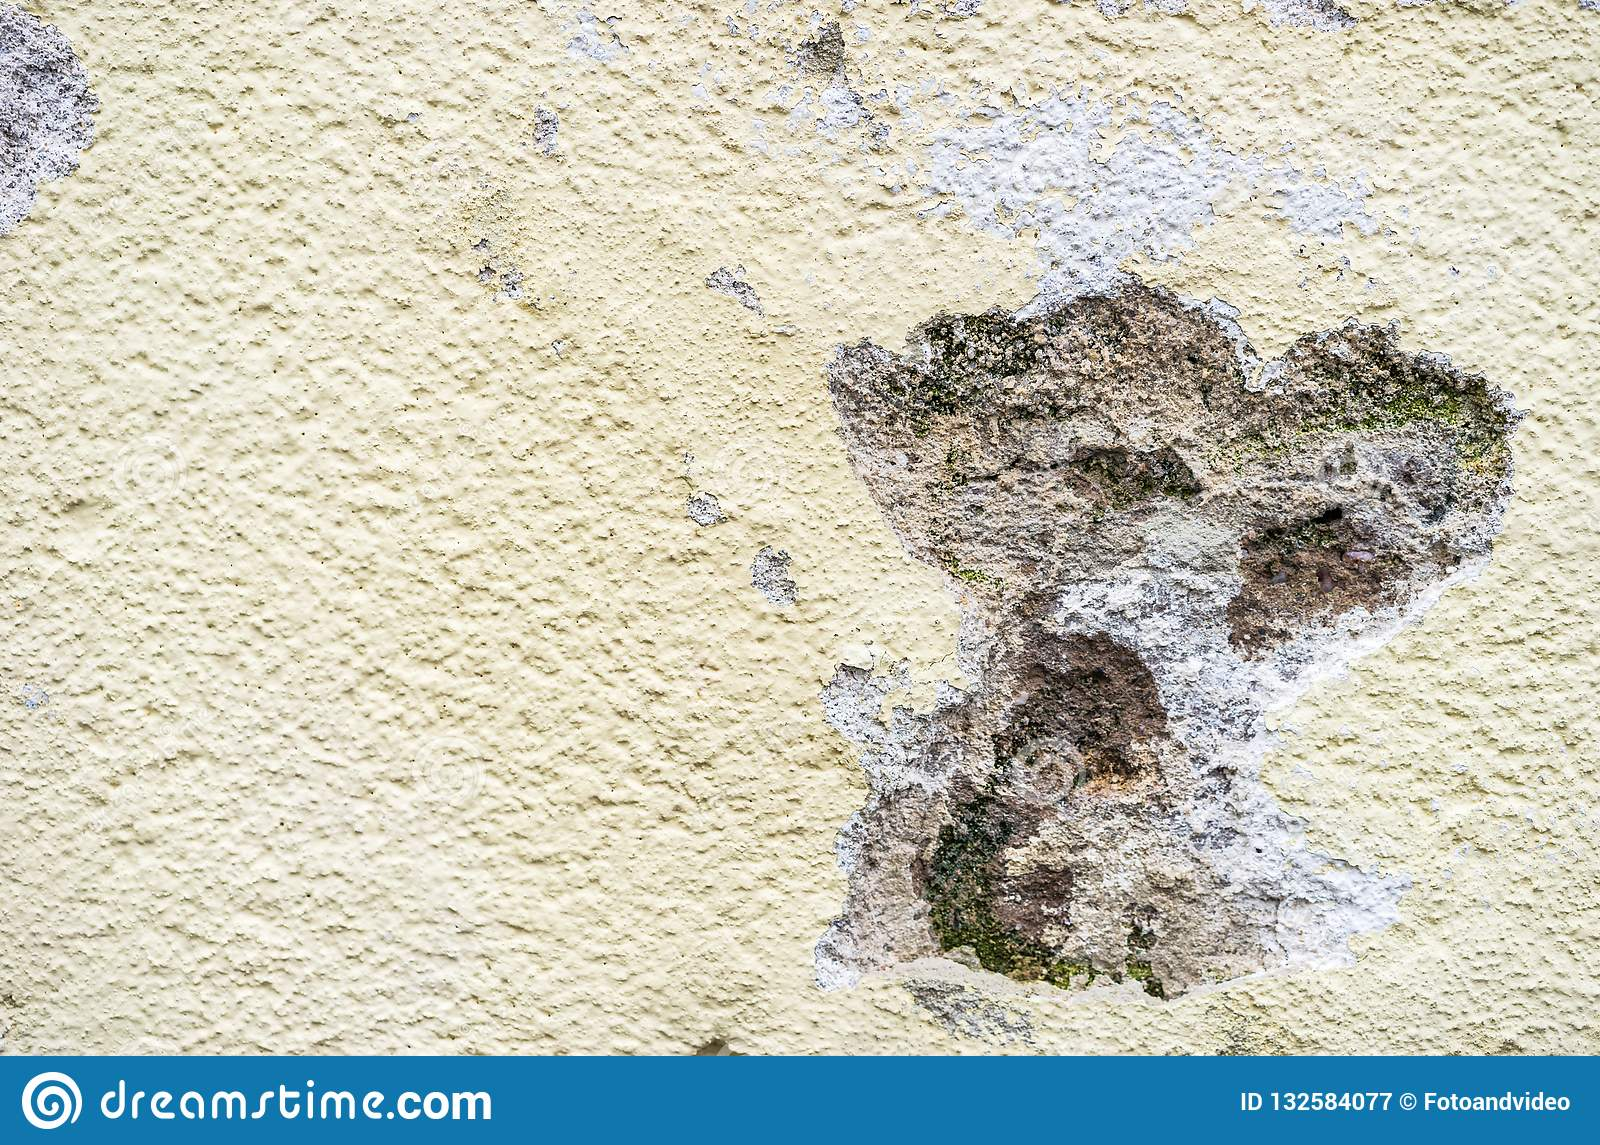 Detail view of mold in a house wall facade, outdoors